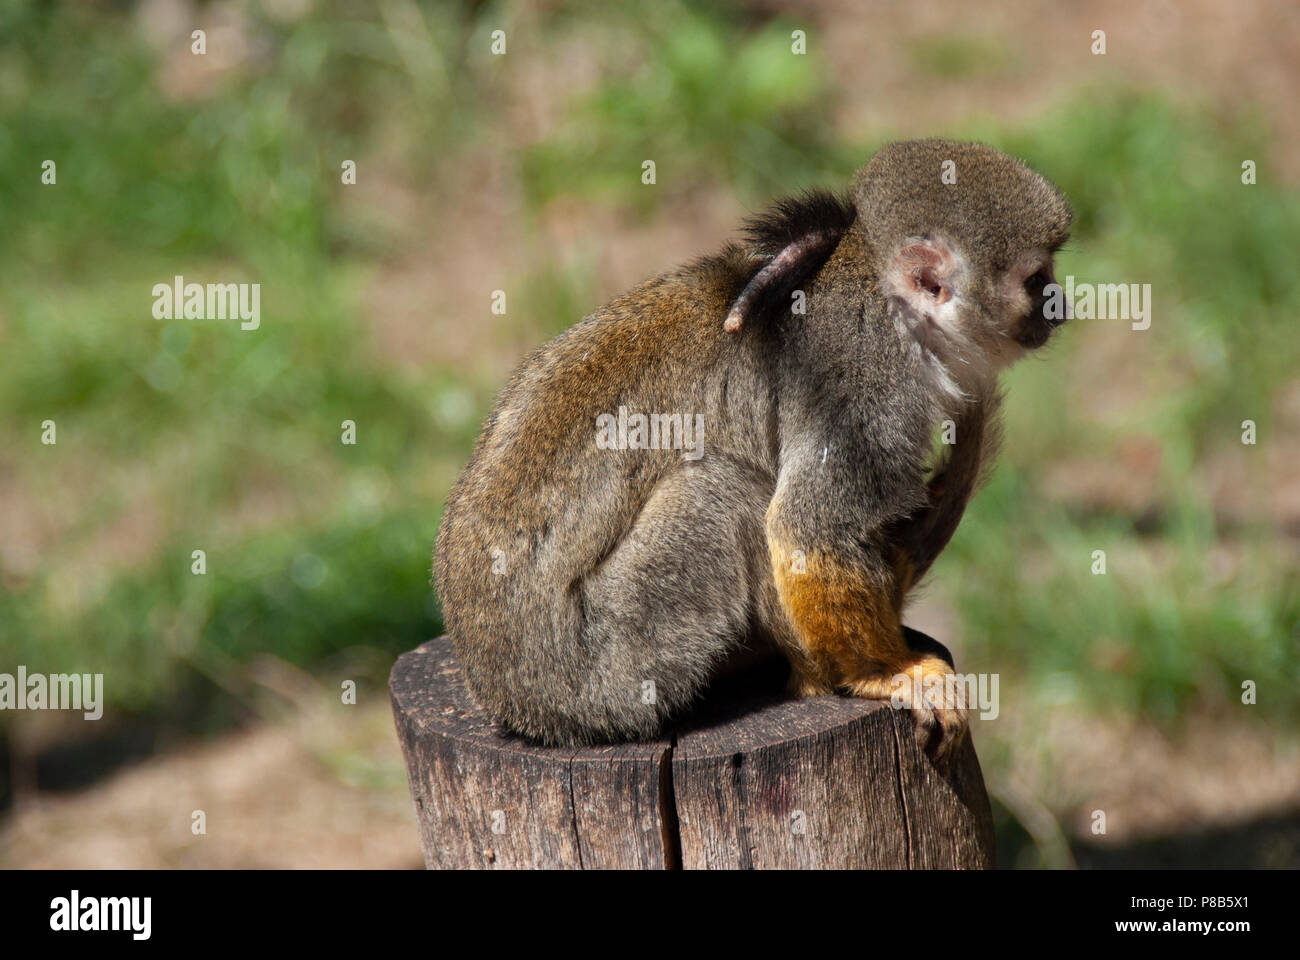 Little cute Ape is sitting on wood - Stock Image